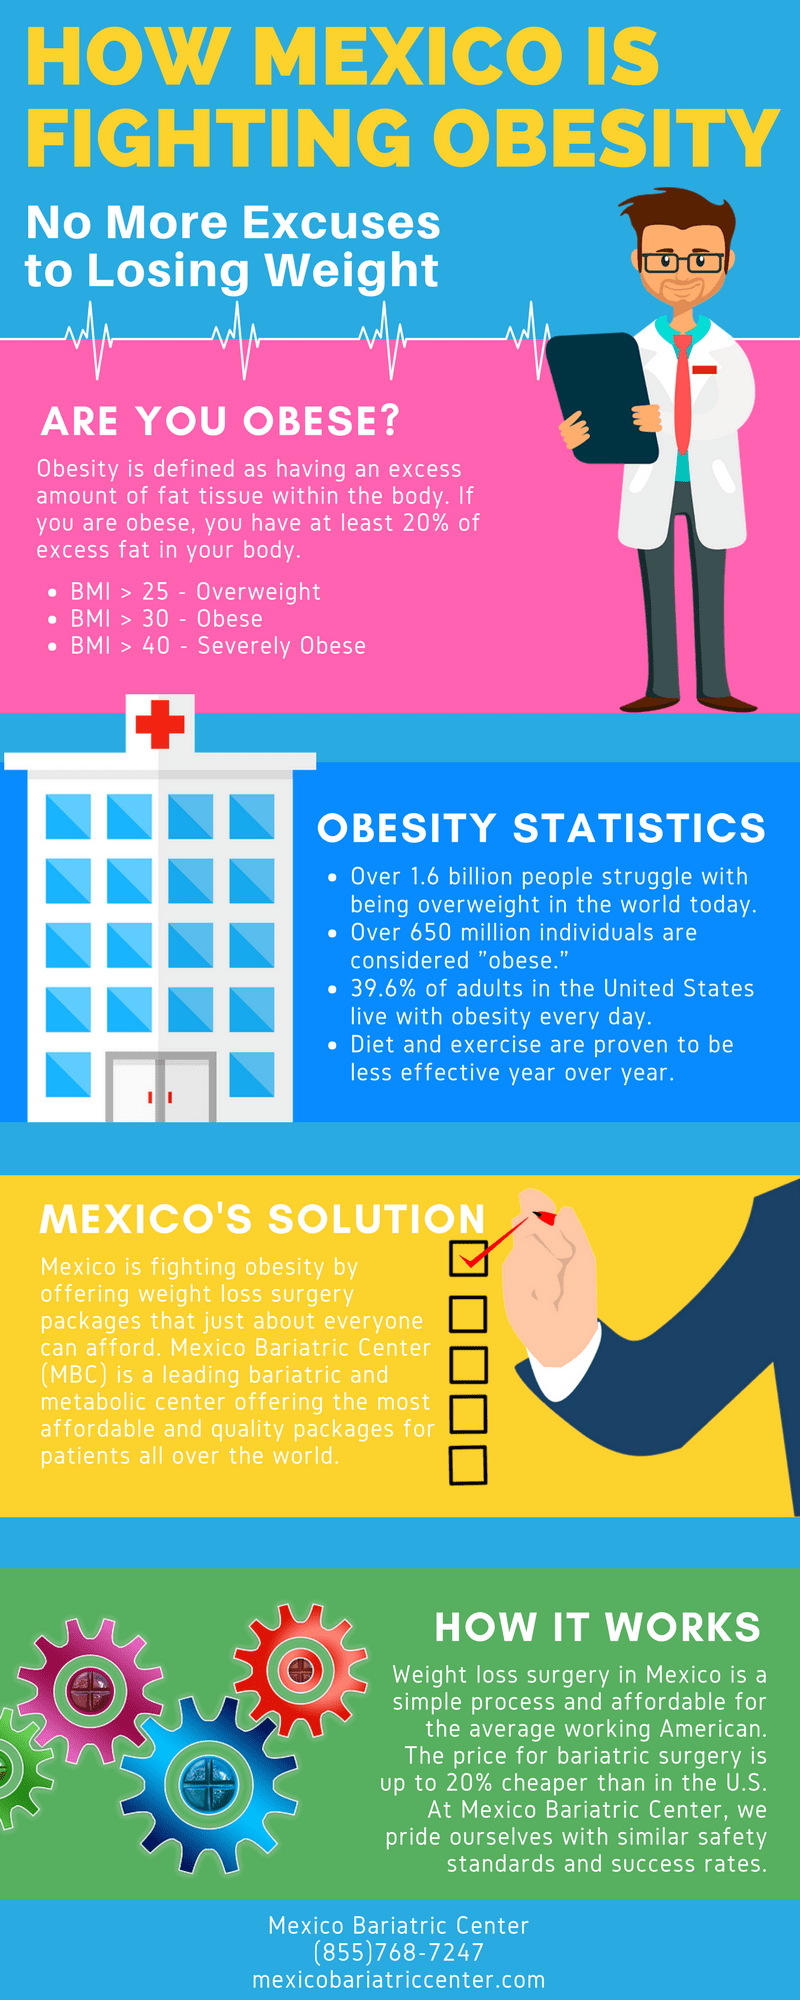 Mexico Bariatric Center: How Mexico is Fighting Obesity